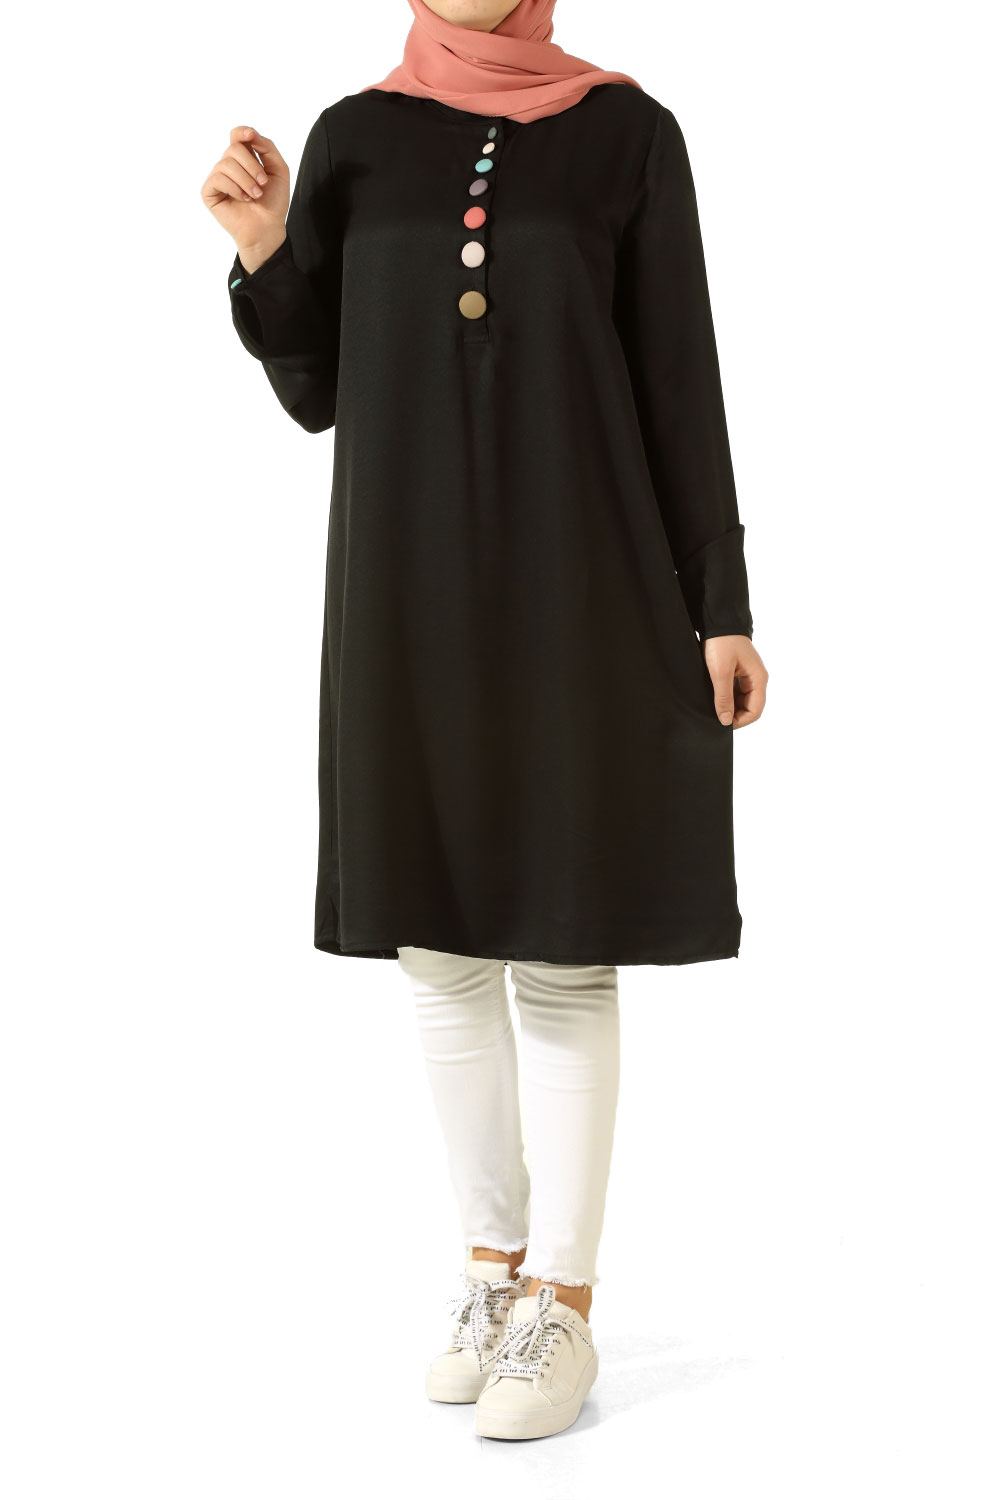 TUNIC WITH COLORED BUTTONS